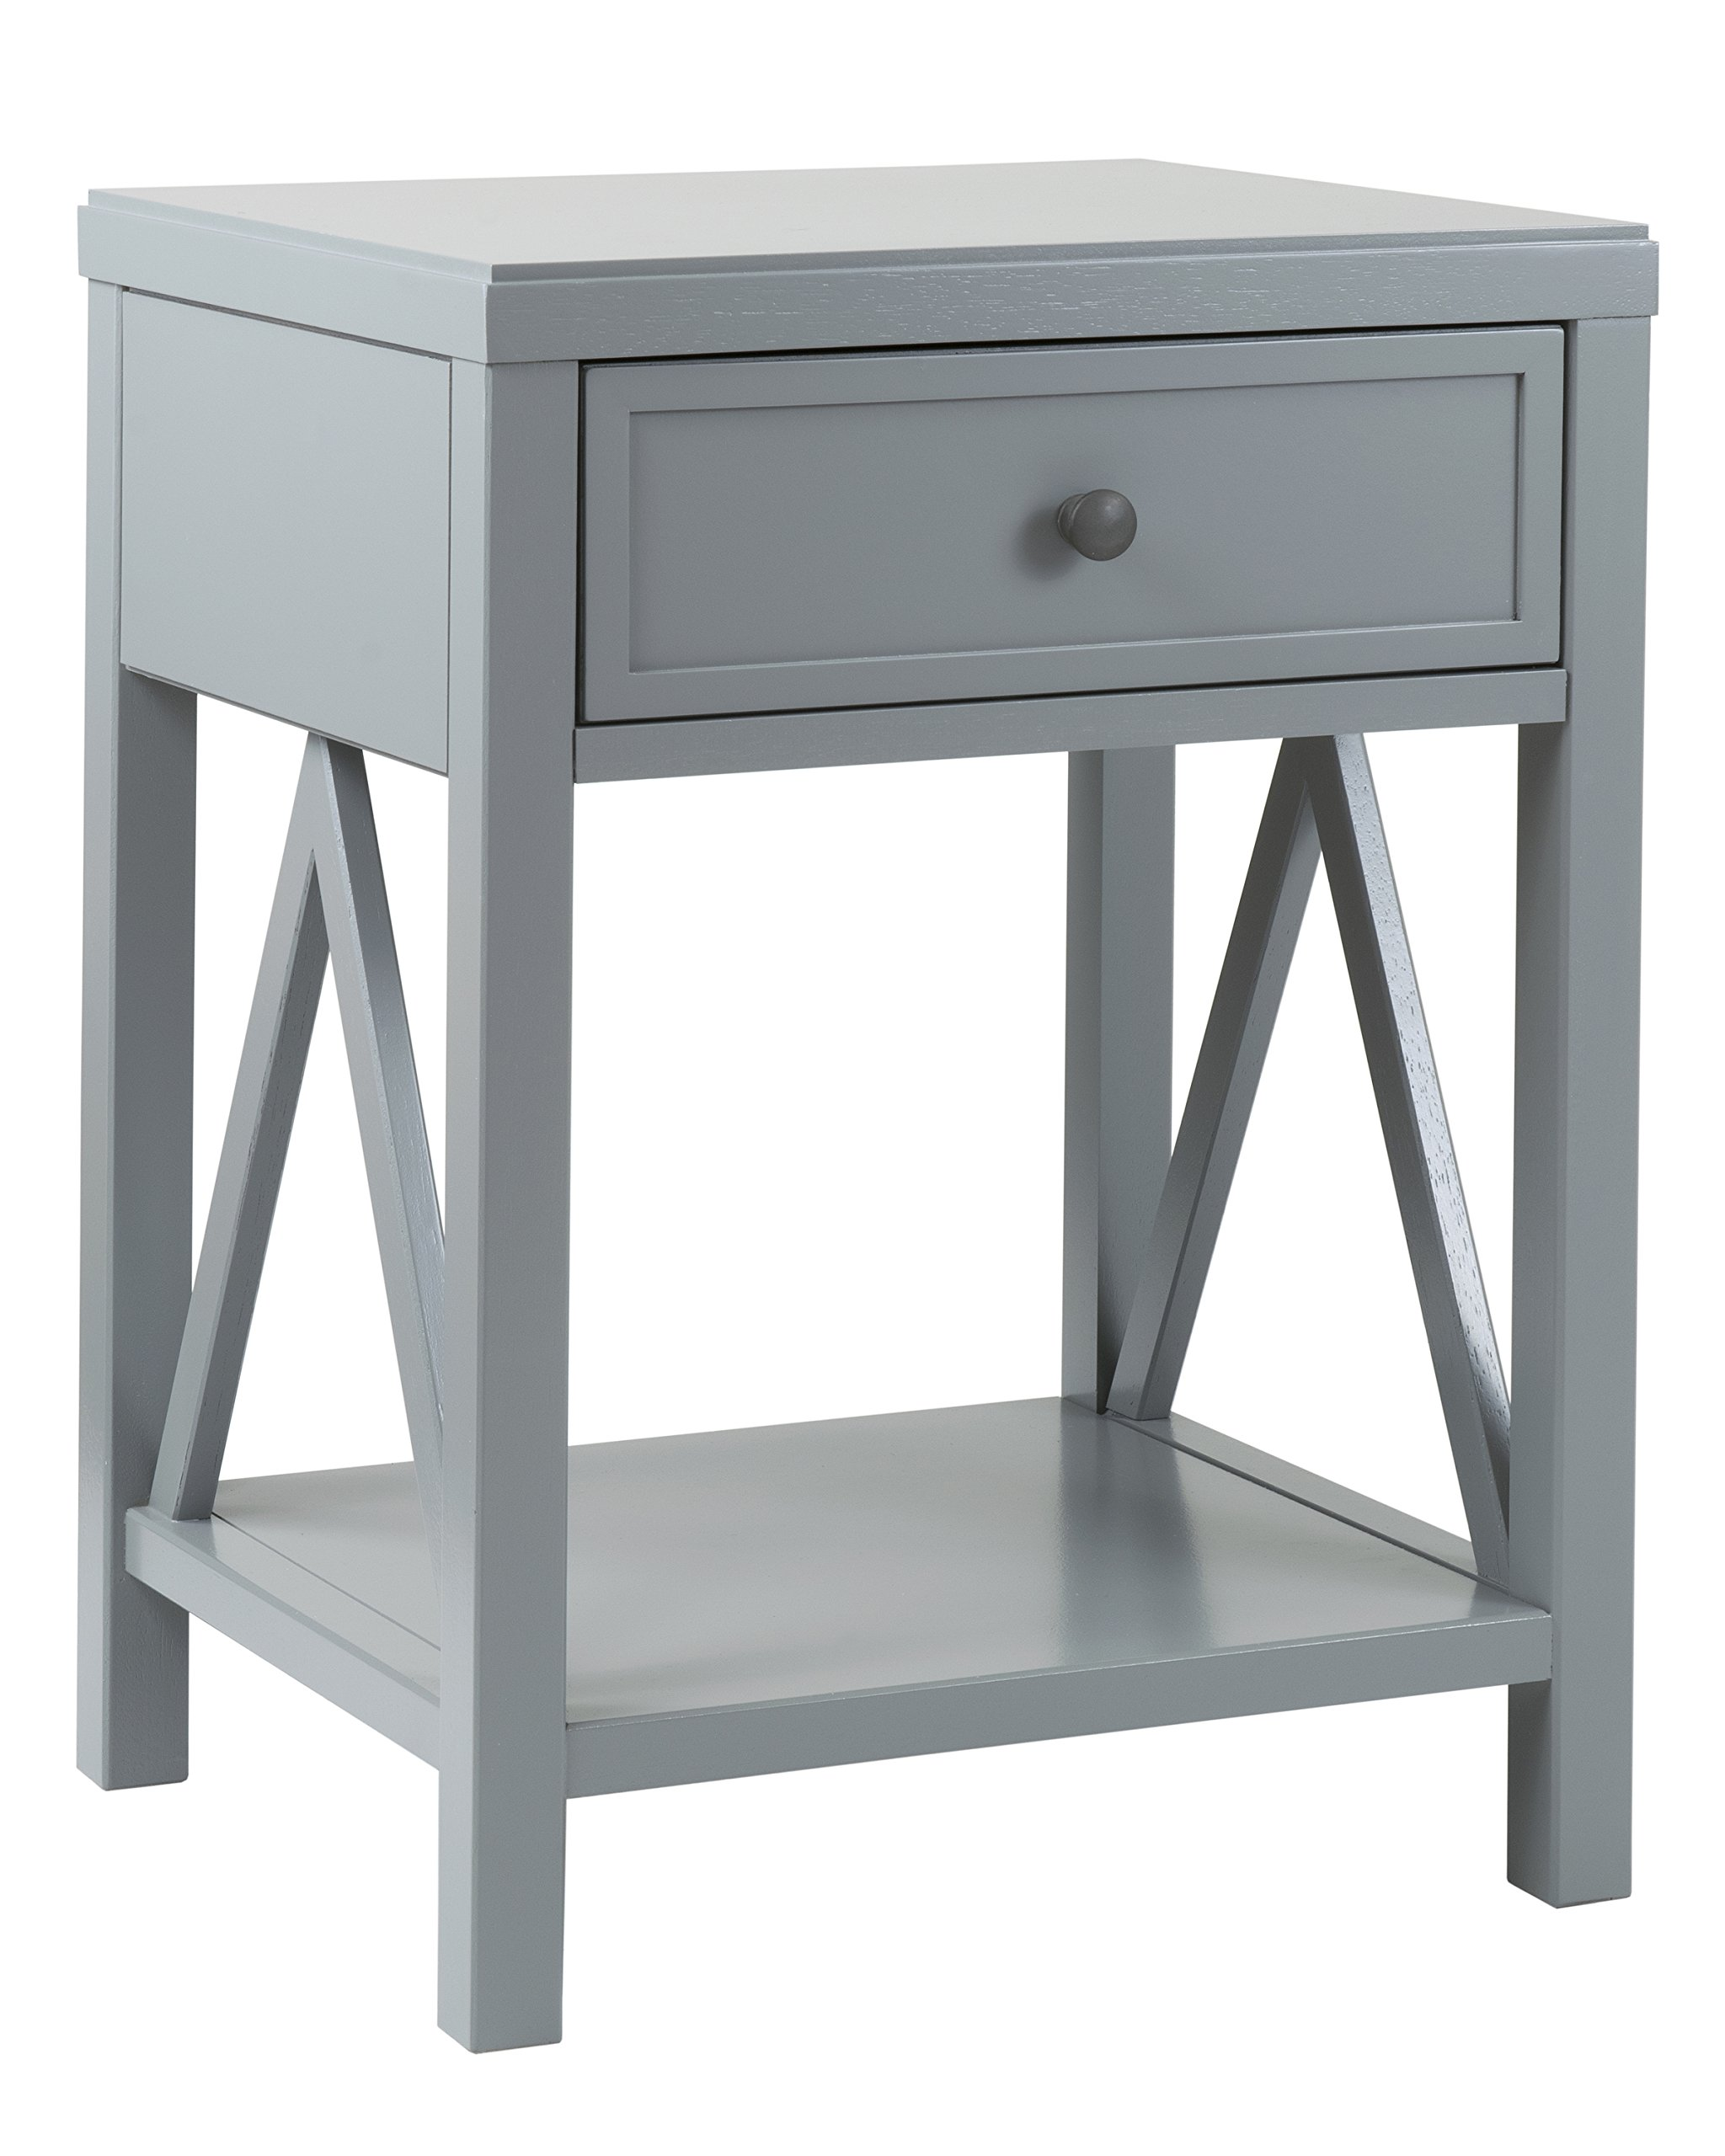 East at Main Wilcox Acacia Wood Square Accent Table, Grey, (15'' L x 17'' W x 23'' H)